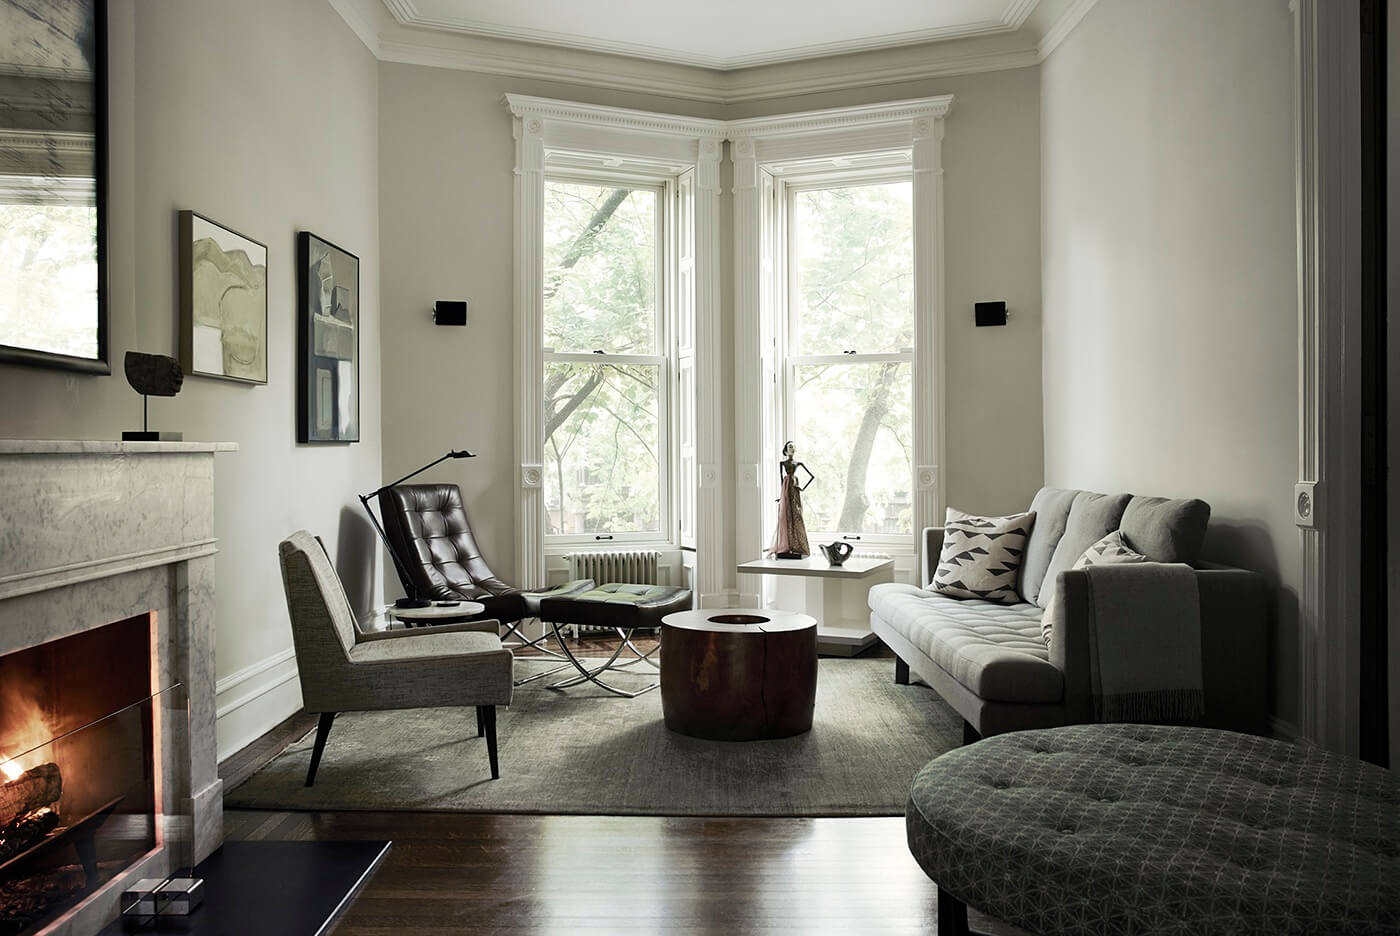 prospect-heights-brooklyn-brownstone-renovation-bangia-agostinho-02